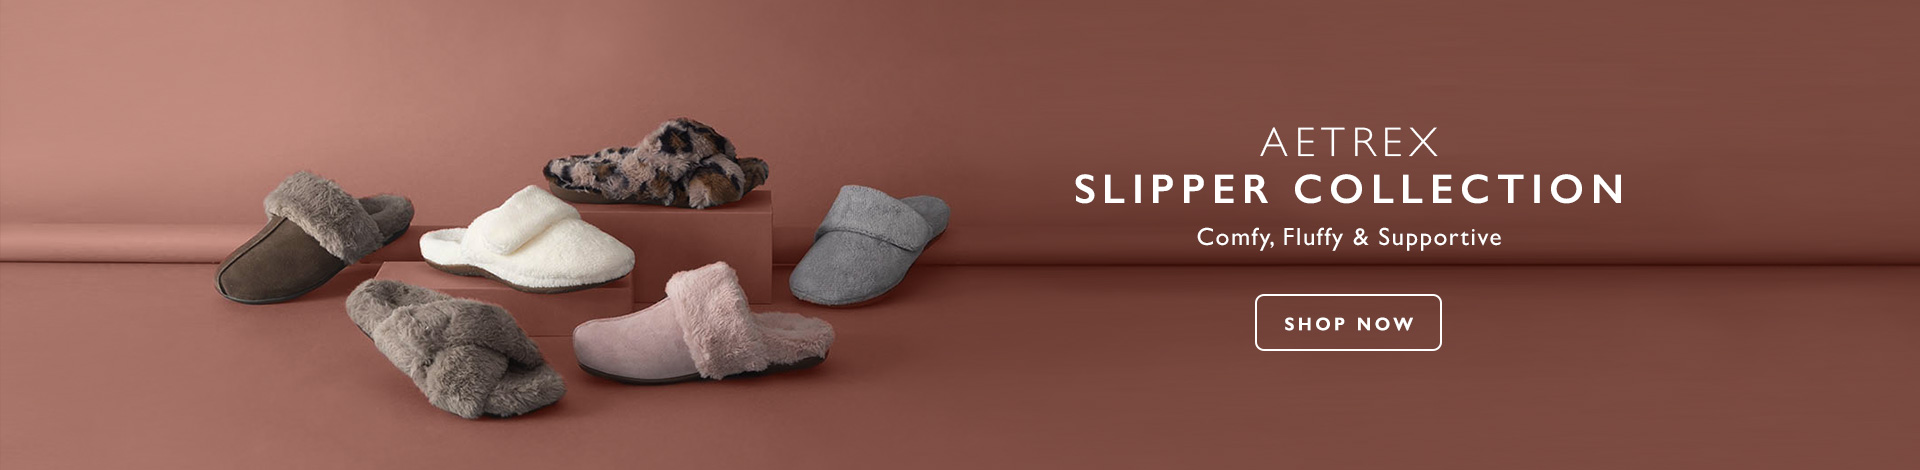 Slippers Launch